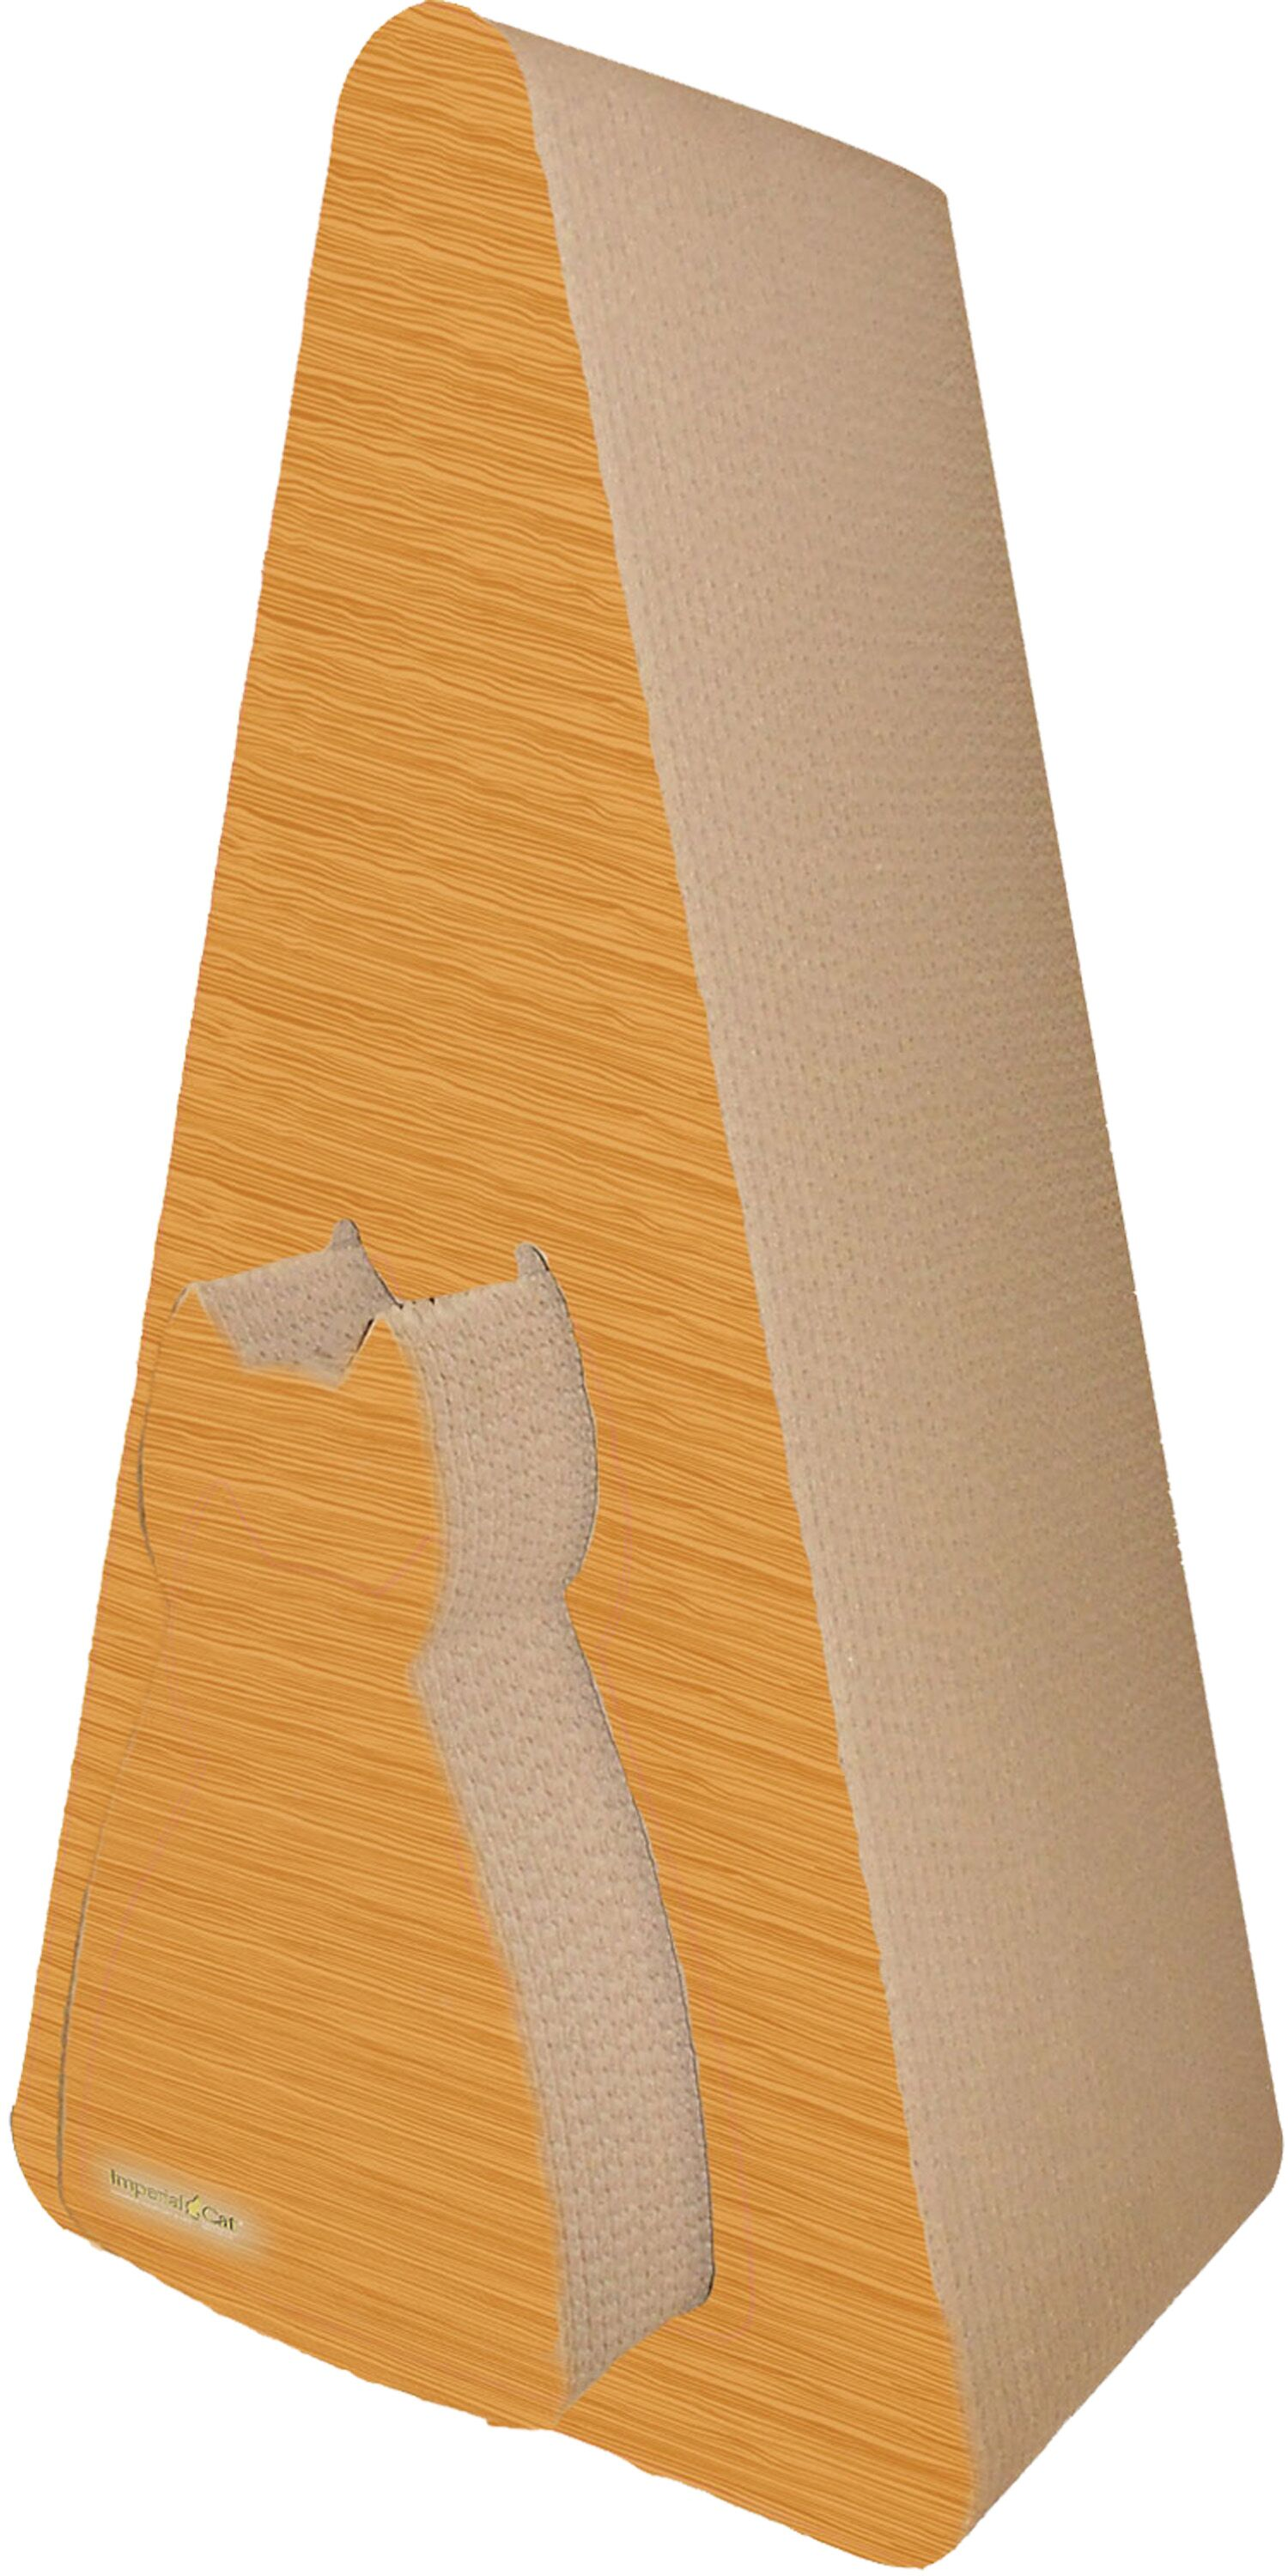 Anton Pyramid Recycled Paper Scratching Post